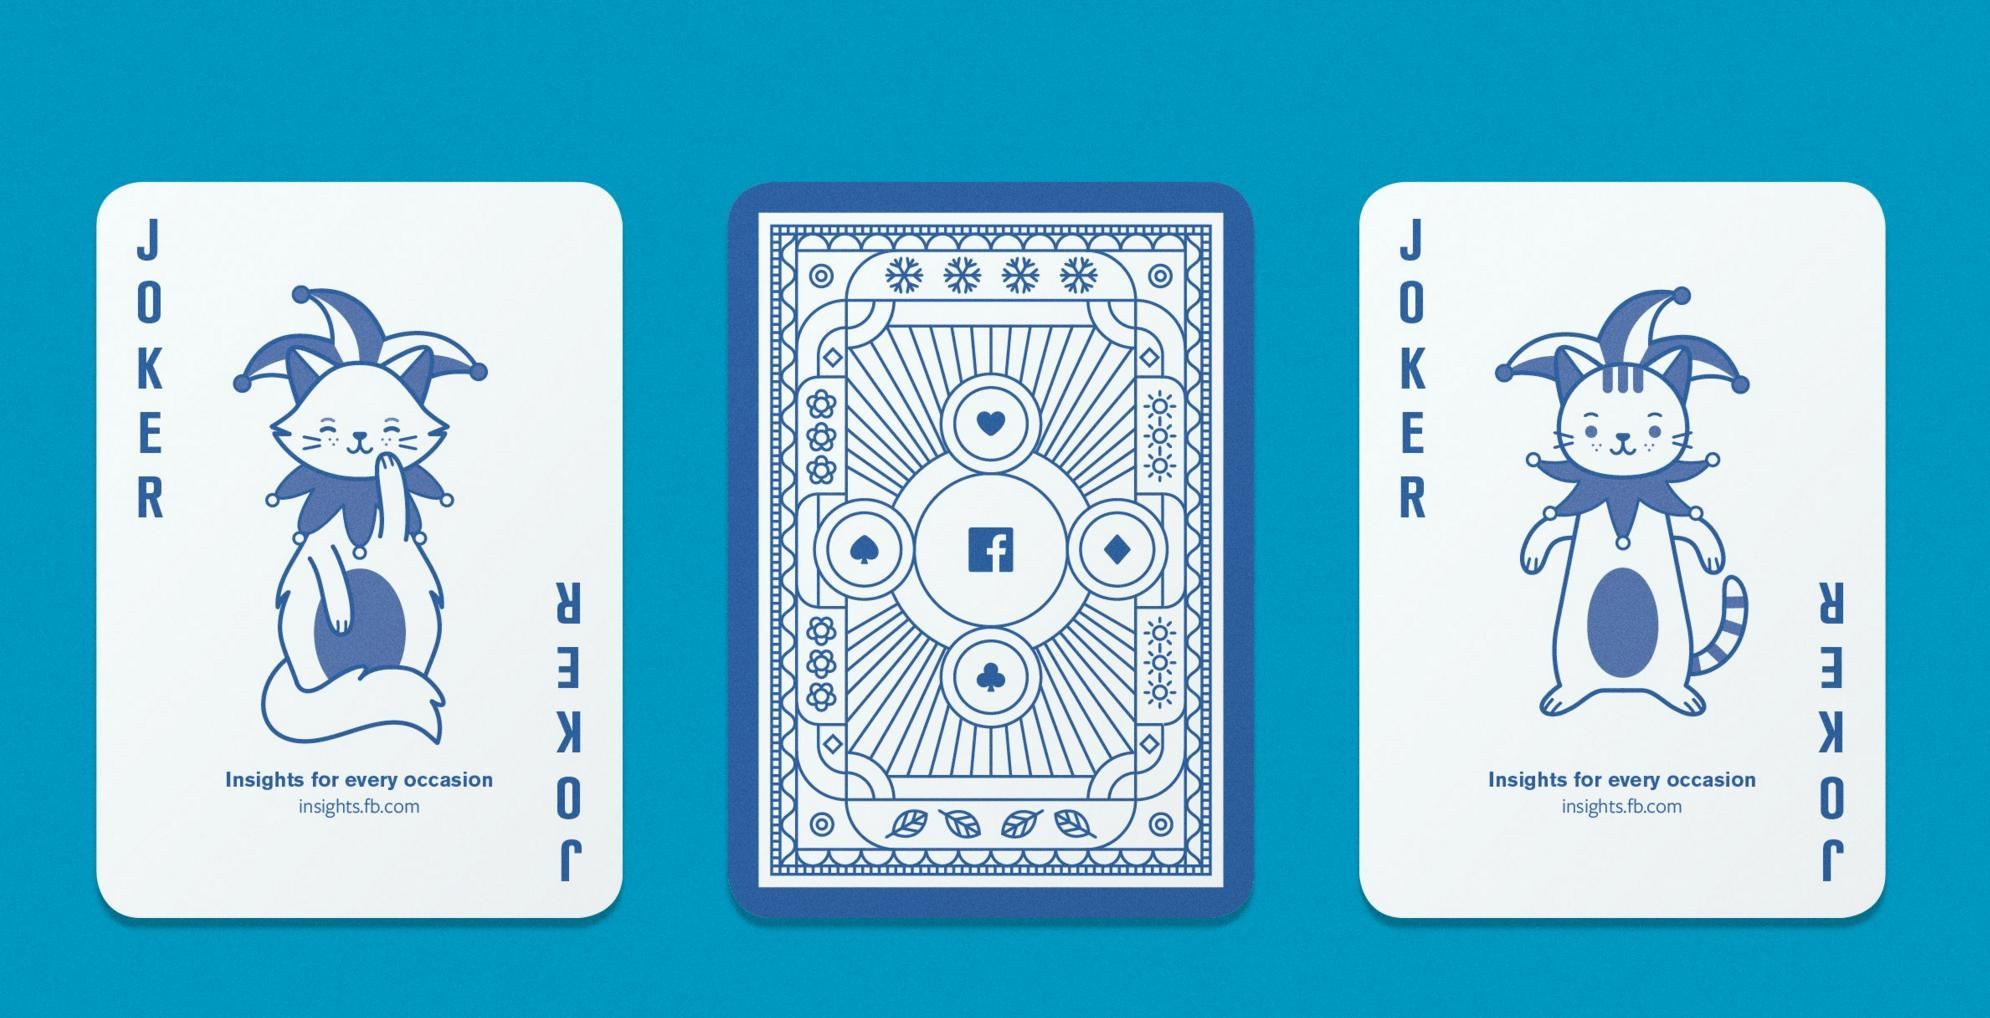 wersm-facebook-deck-playing-cards